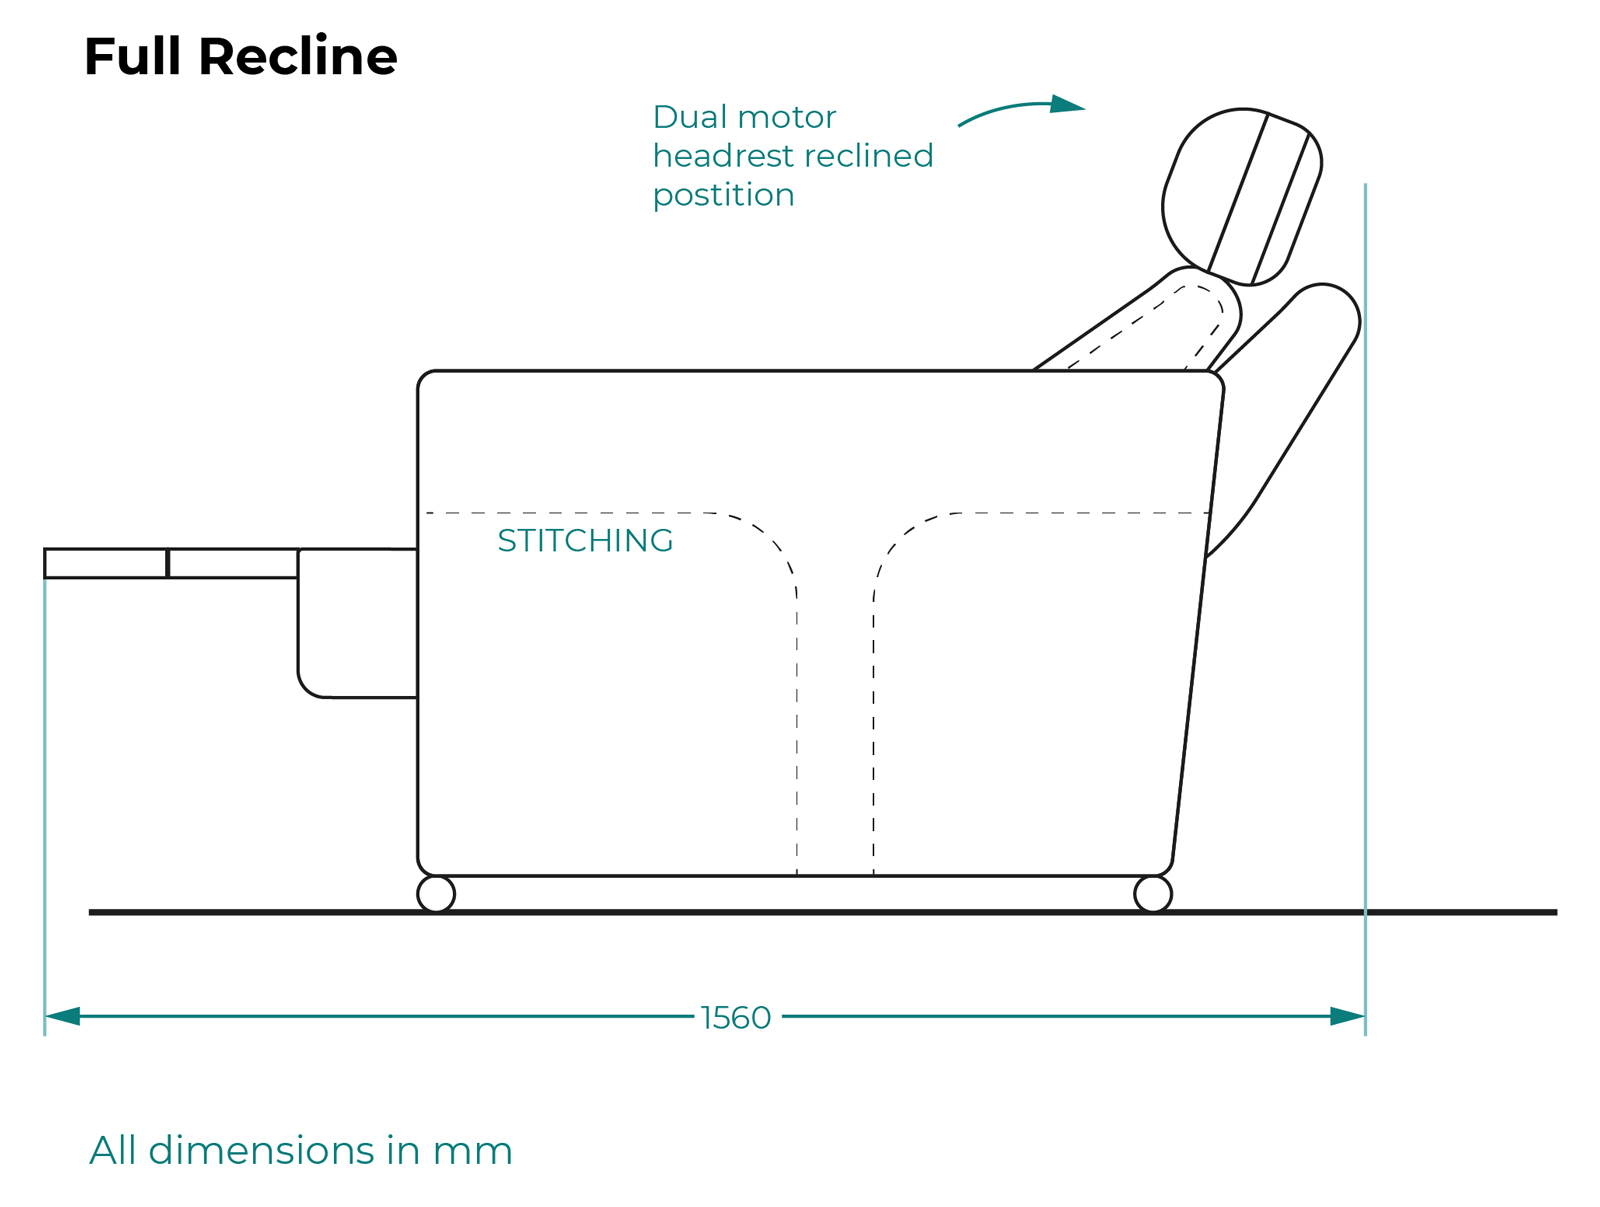 Serenity sideview - full recline